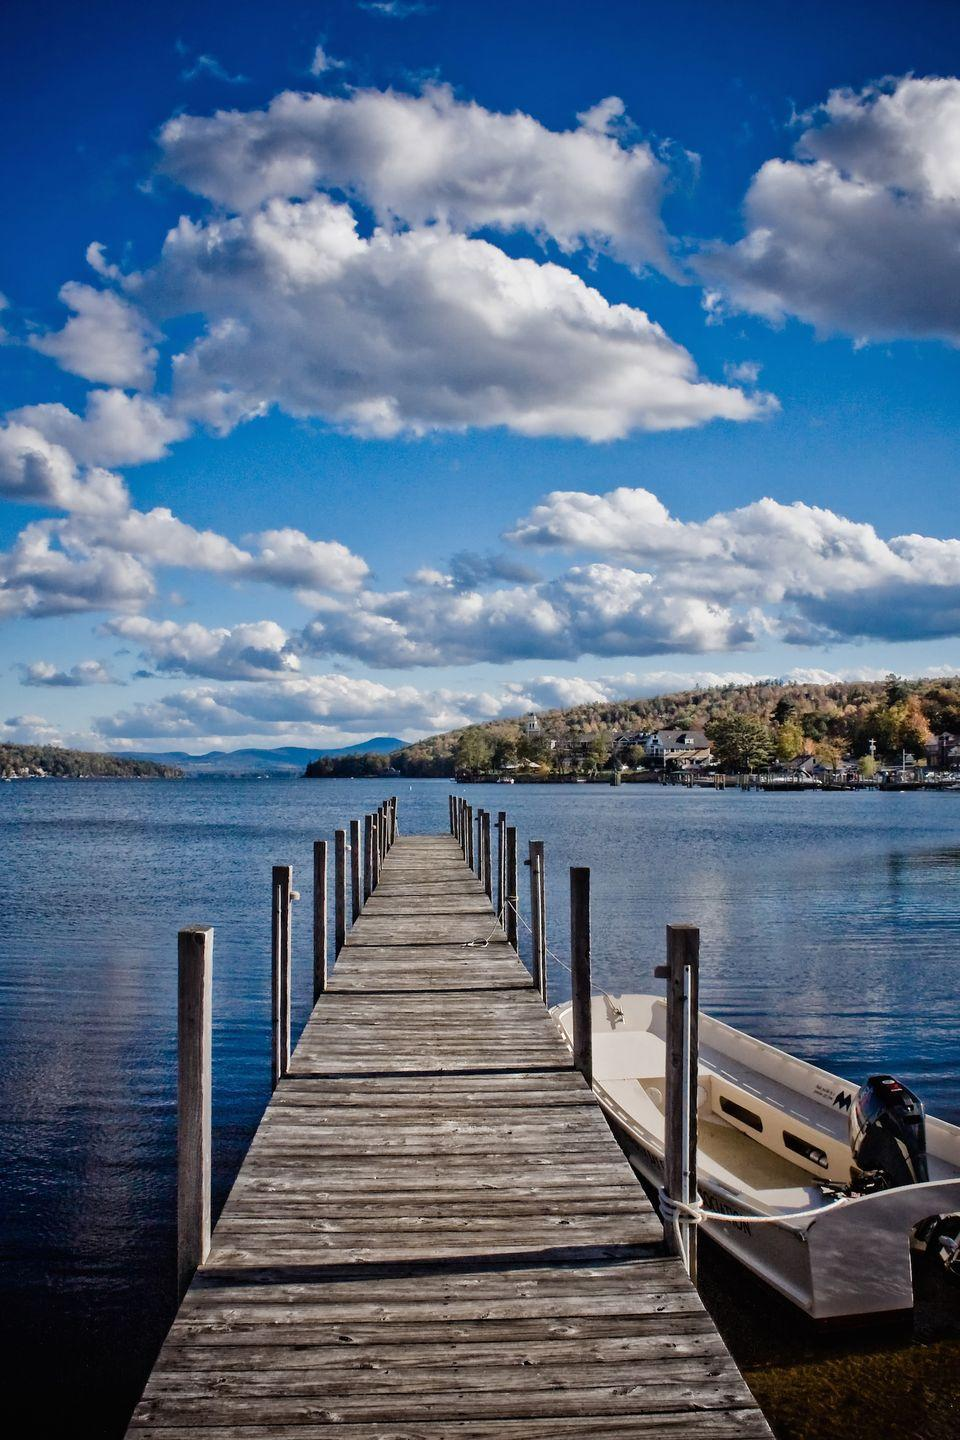 "<p>Life revolves around the mirror-like Lake Winnipesaukee in this laid-back town. Resorts dot the shores, giving residents a good excuse to play tourist for the day. However, the most fun way to explore might be the <a href=""http://www.hoborr.com/winni.html"" rel=""nofollow noopener"" target=""_blank"" data-ylk=""slk:Winnipesaukee Scenic Railroad"" class=""link rapid-noclick-resp"">Winnipesaukee Scenic Railroad</a>.</p><p><a href=""https://www.housebeautiful.com/design-inspiration/celebrity-homes/a5286/bette-davis-butternut-farm/"" rel=""nofollow noopener"" target=""_blank"" data-ylk=""slk:Rent Bette Davis' New Hampshire farm »"" class=""link rapid-noclick-resp""><em>Rent Bette Davis' New Hampshire farm »</em></a></p>"